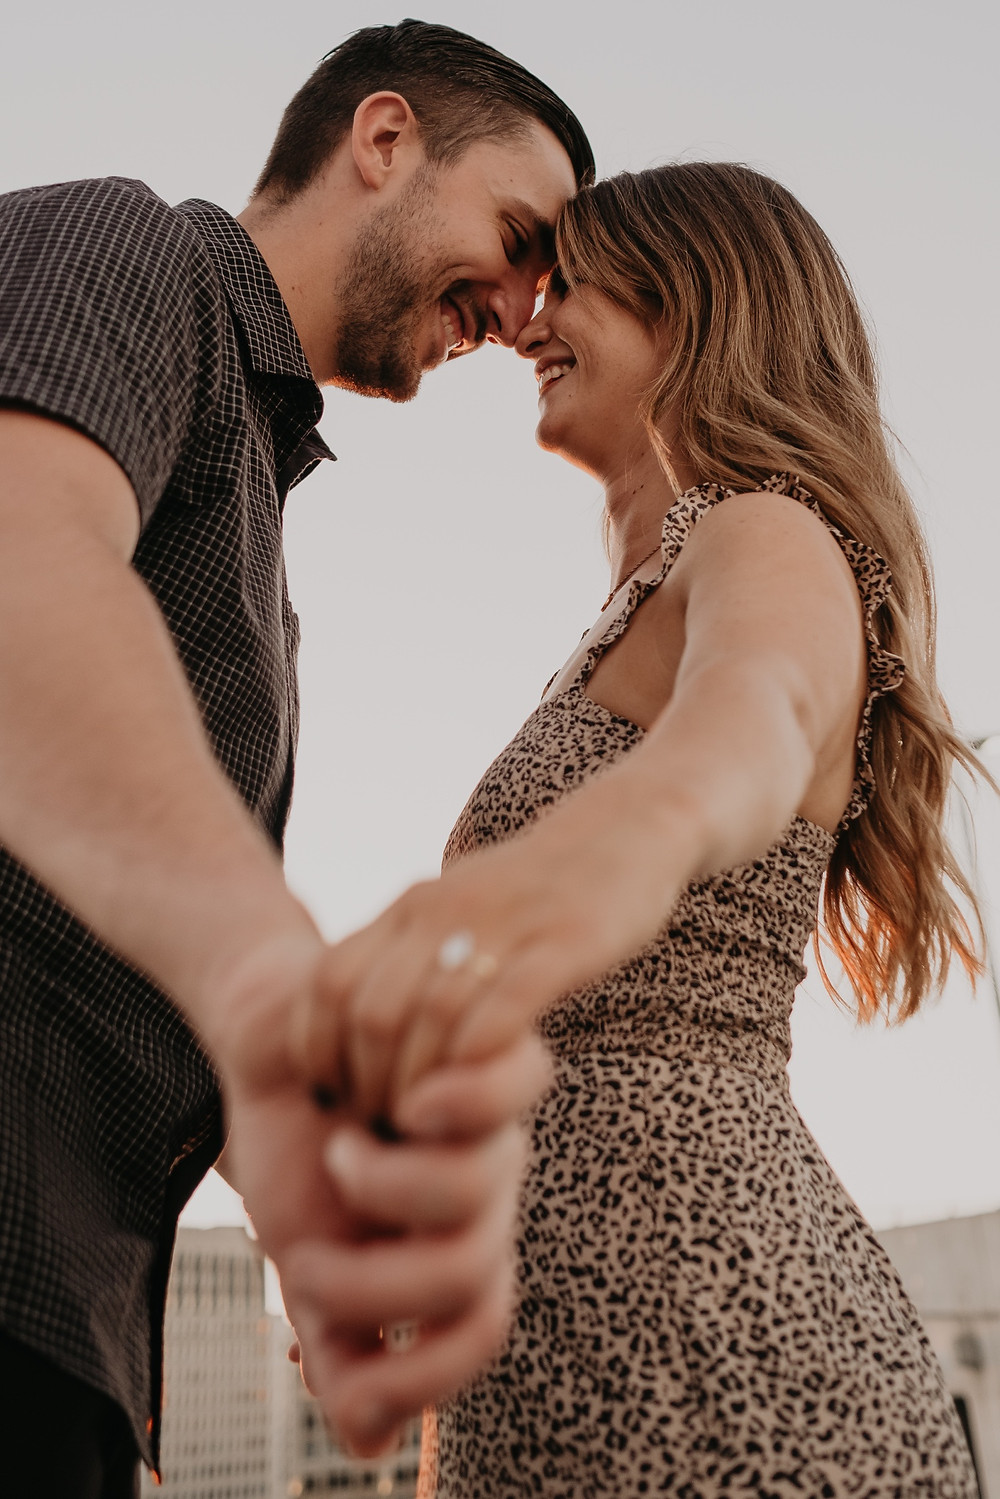 Couple holding hands at sunset on city rooftop. Photographed by Nicole Leanne Photography.